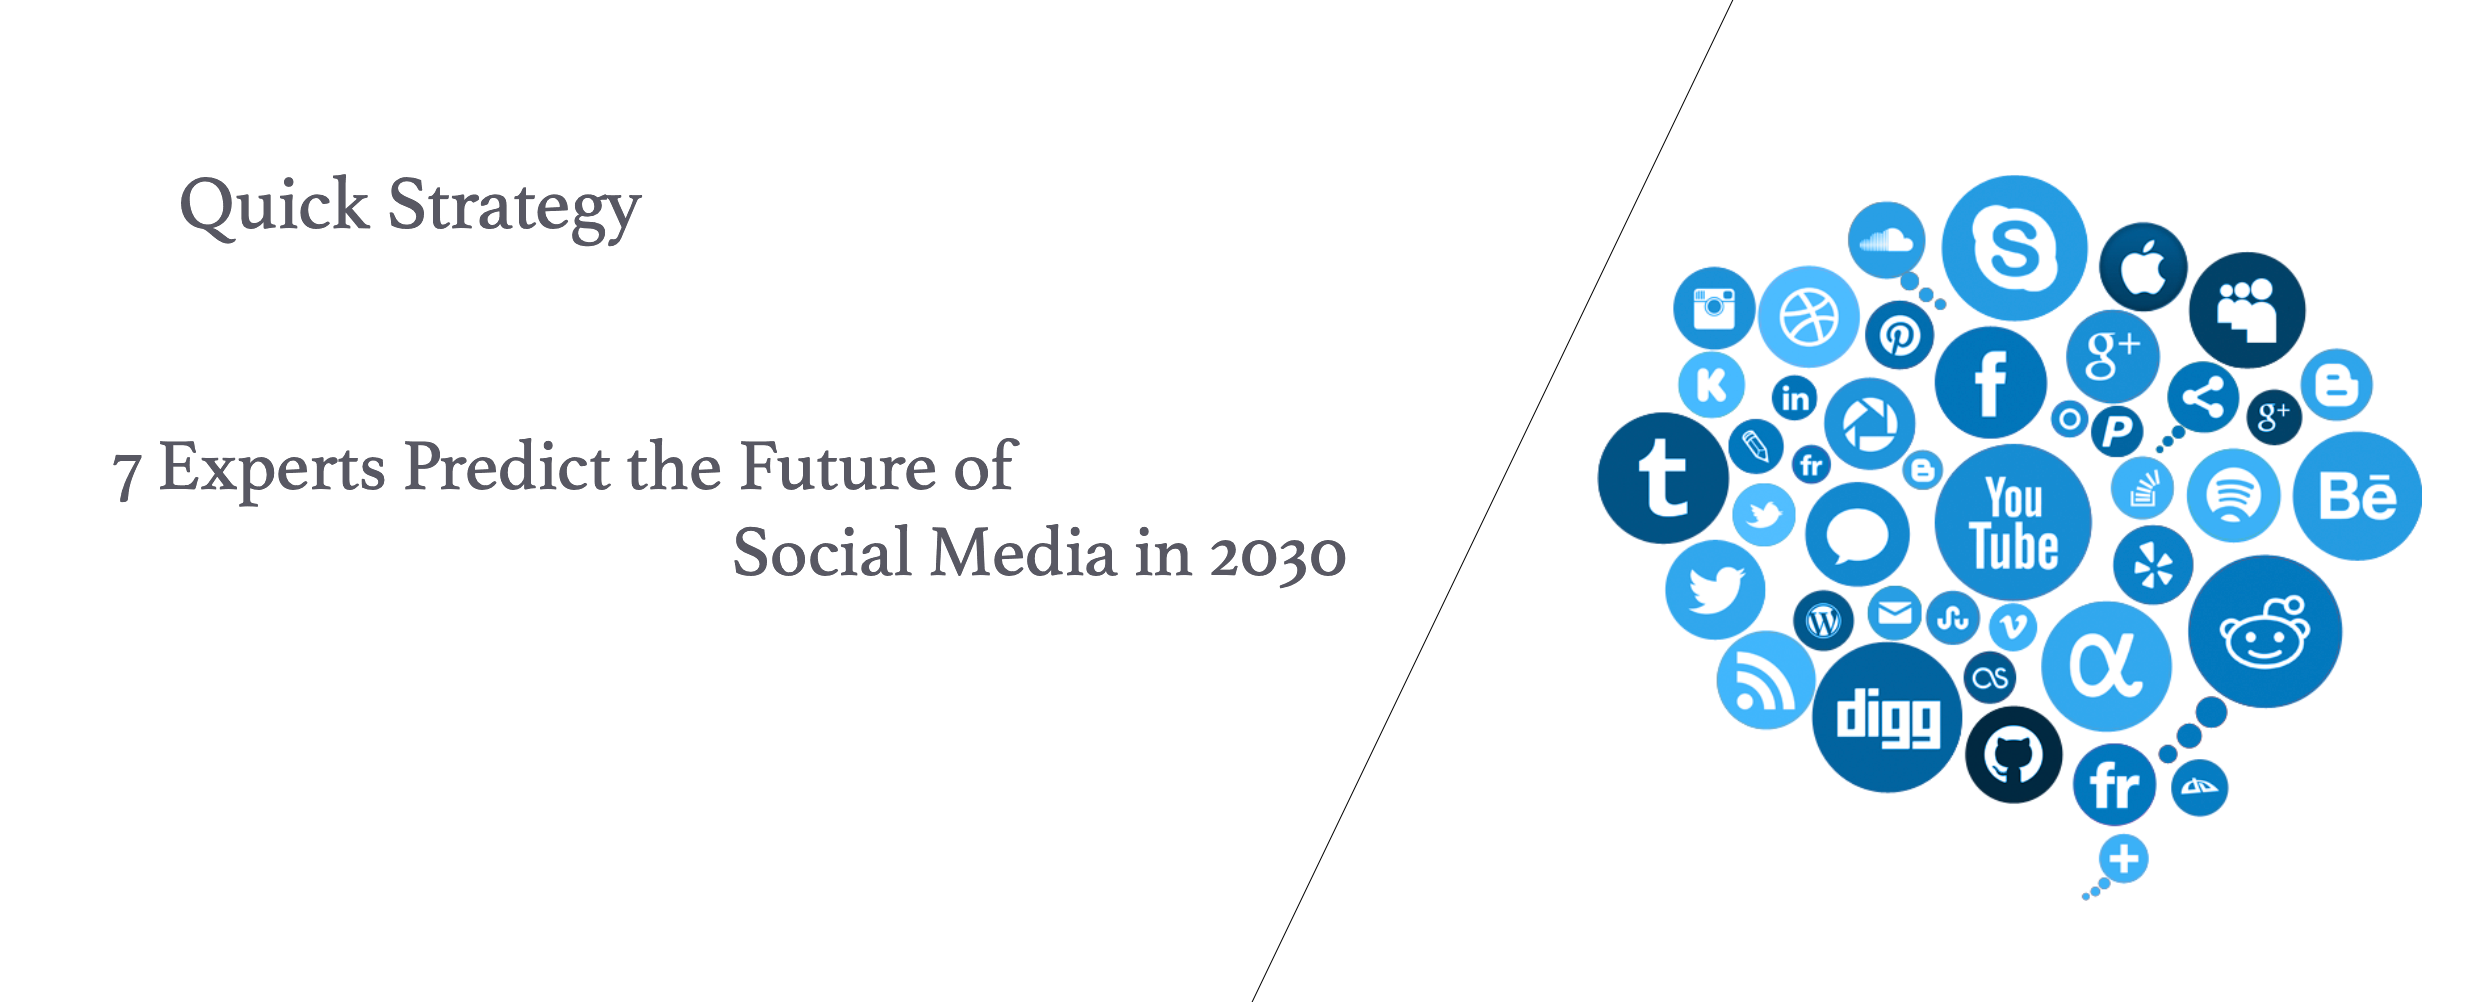 7 Experts Predict the Future of Social Media in 2030